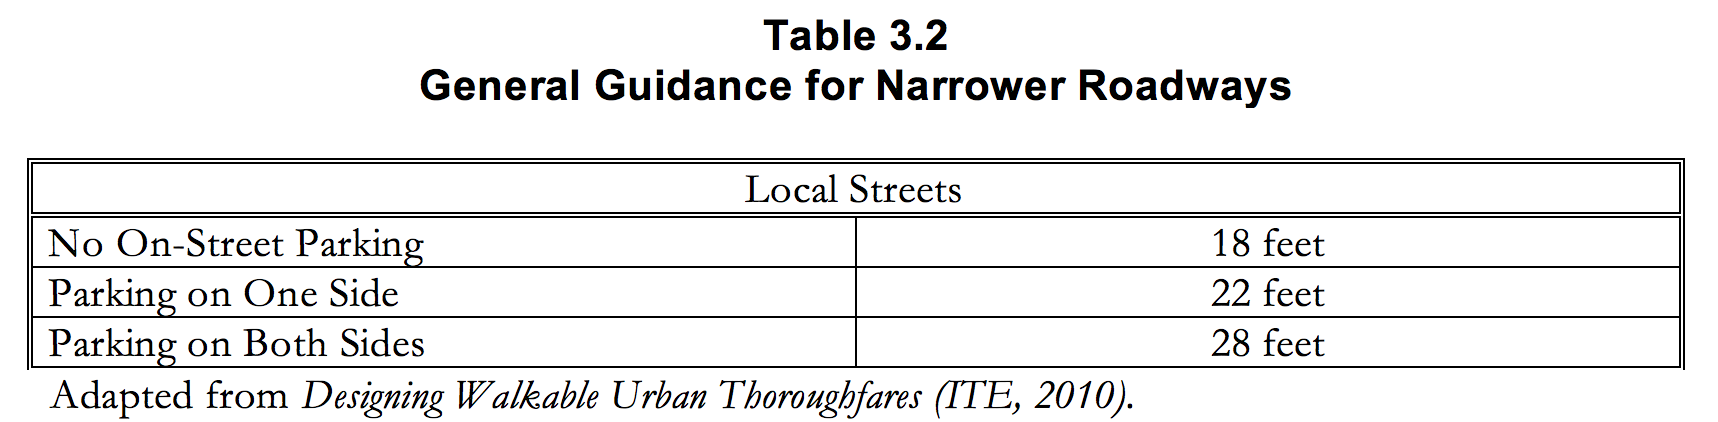 Table 3.2 General guidance for narrower roadways